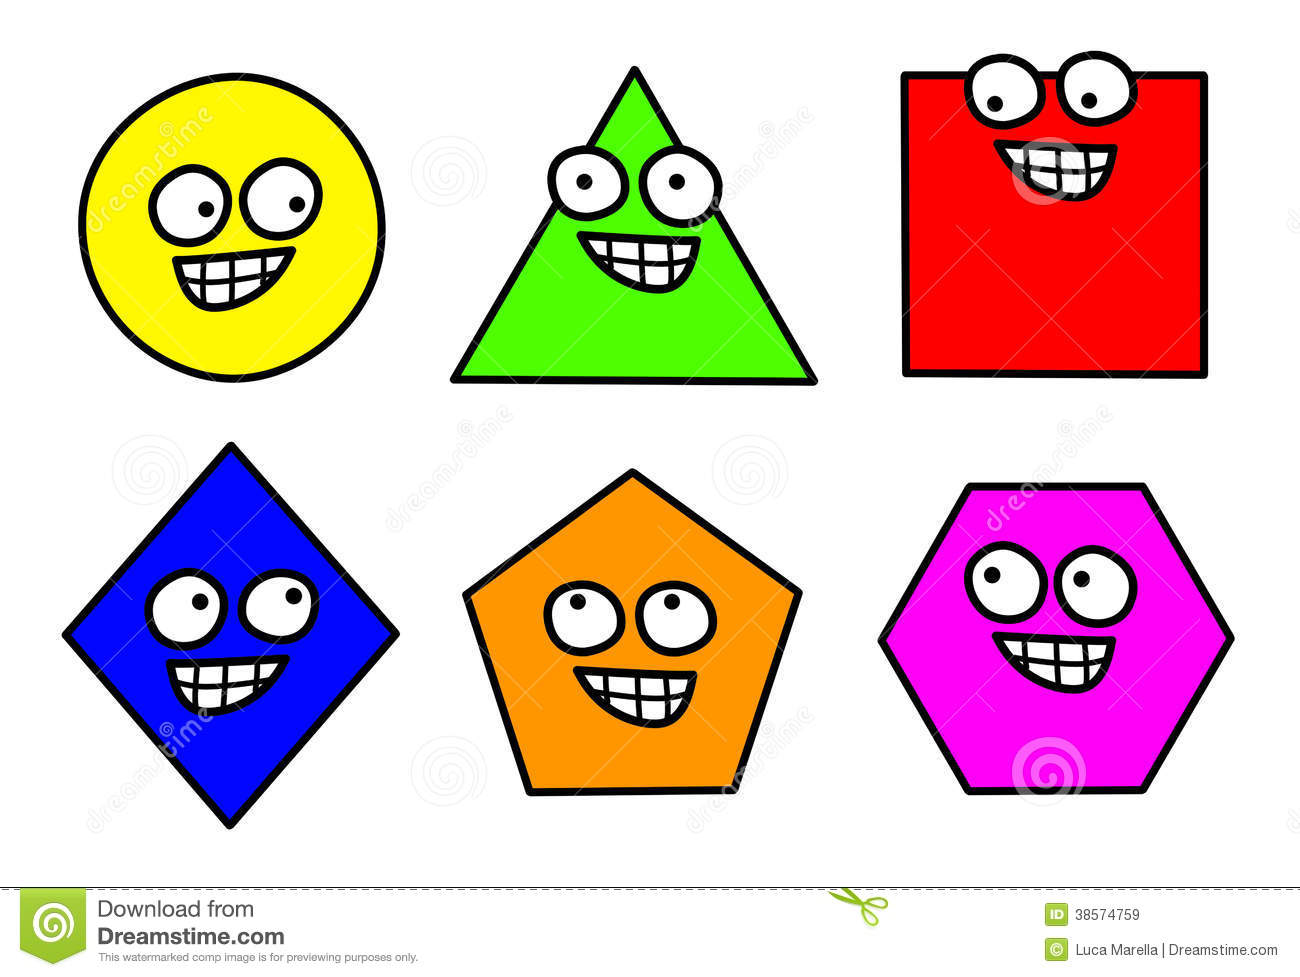 Geometry inscribed shapes clip art.